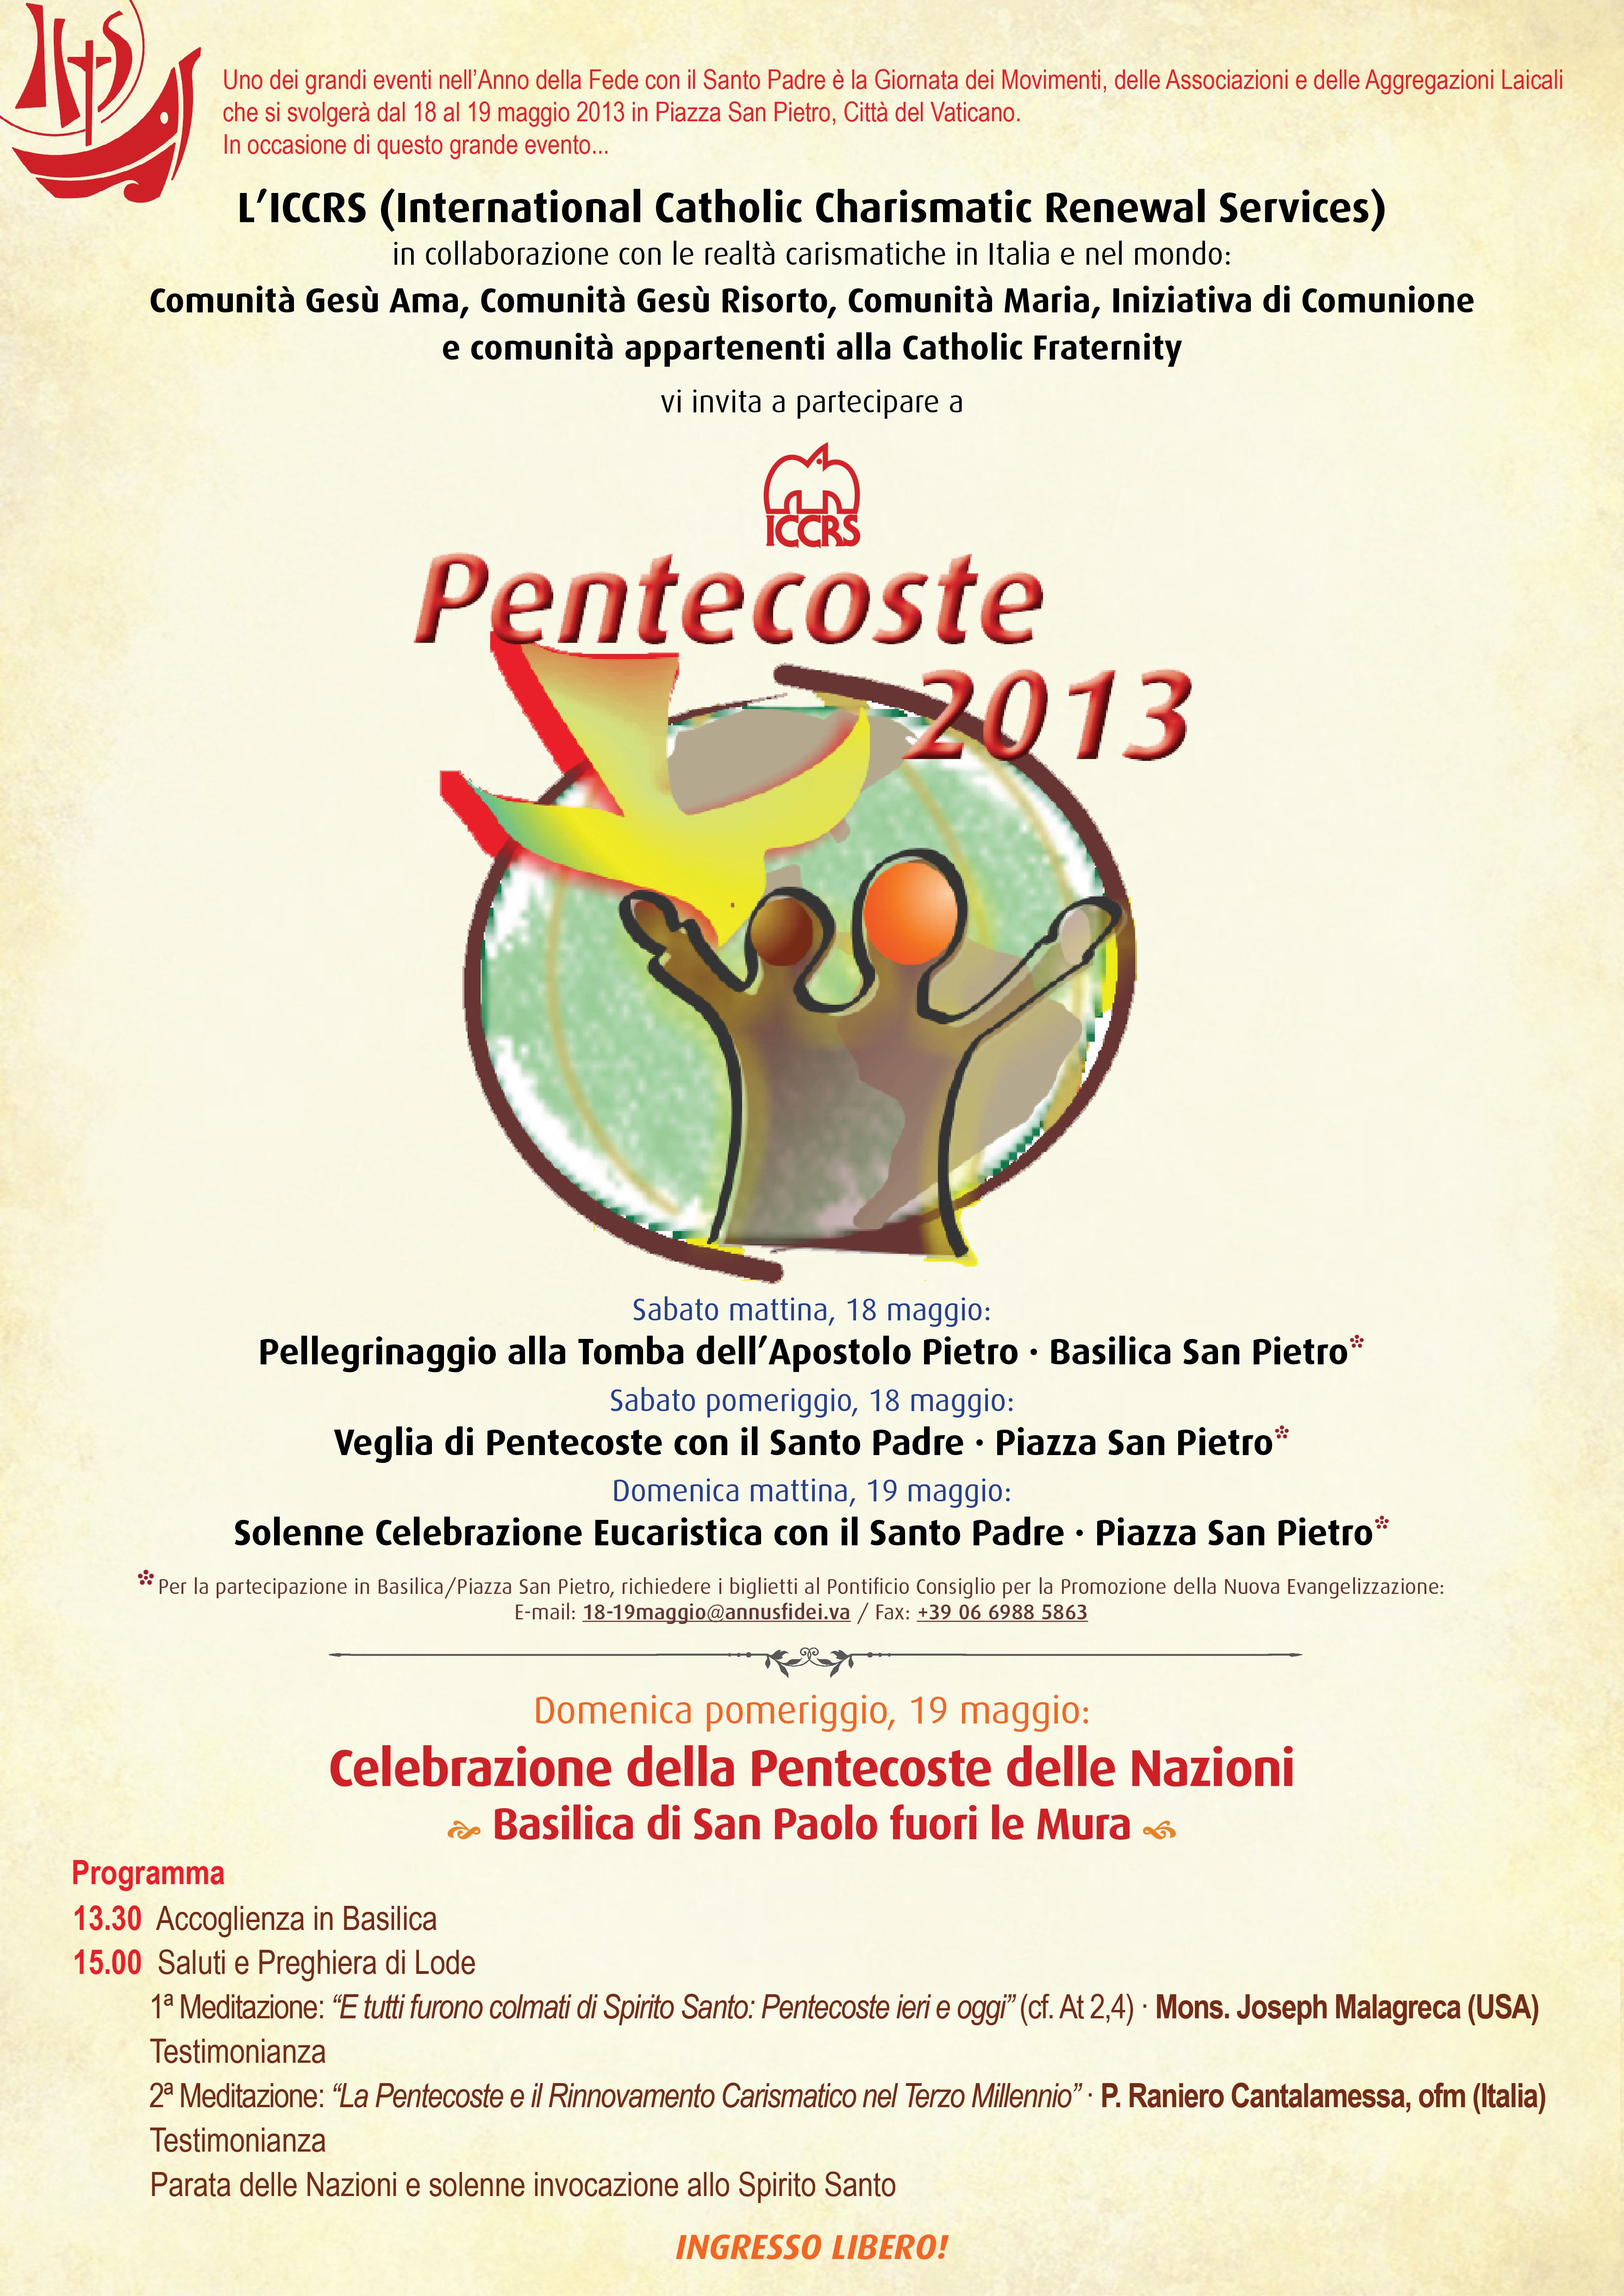 Poster for Pentecost 2013